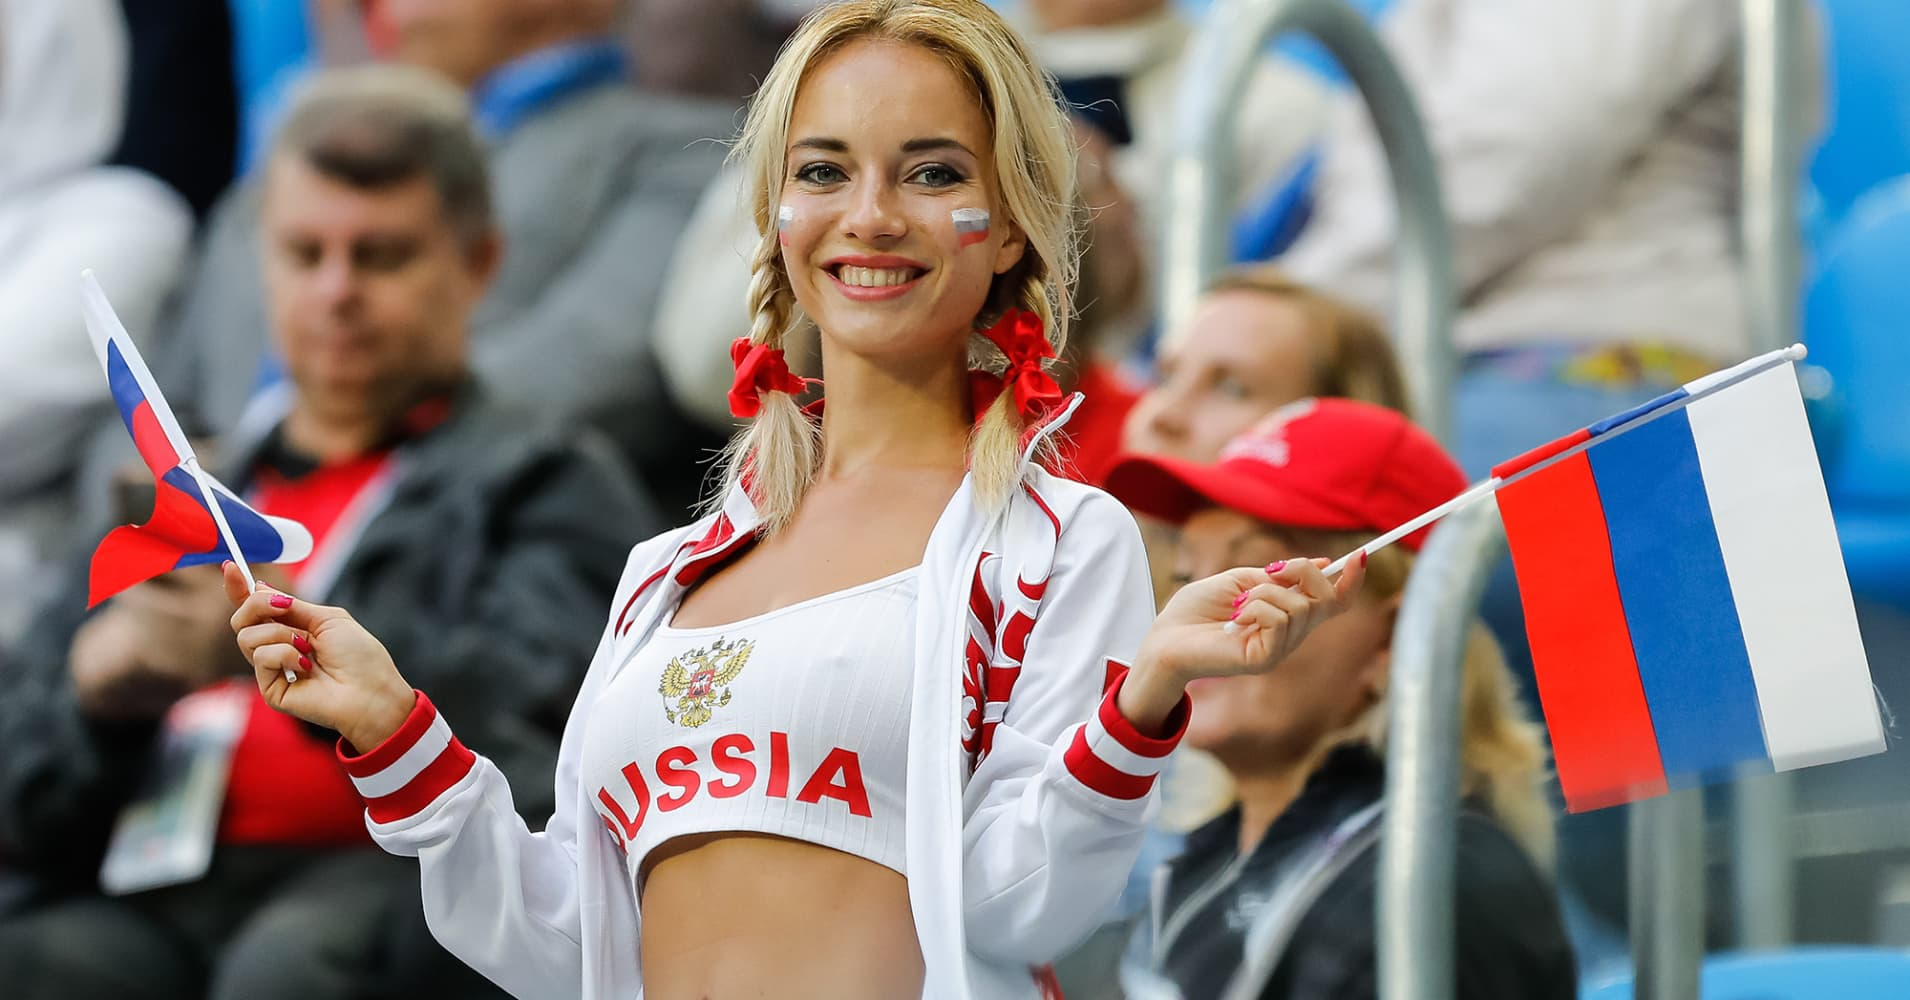 Image result for fifa world cup 2018 fans gallery